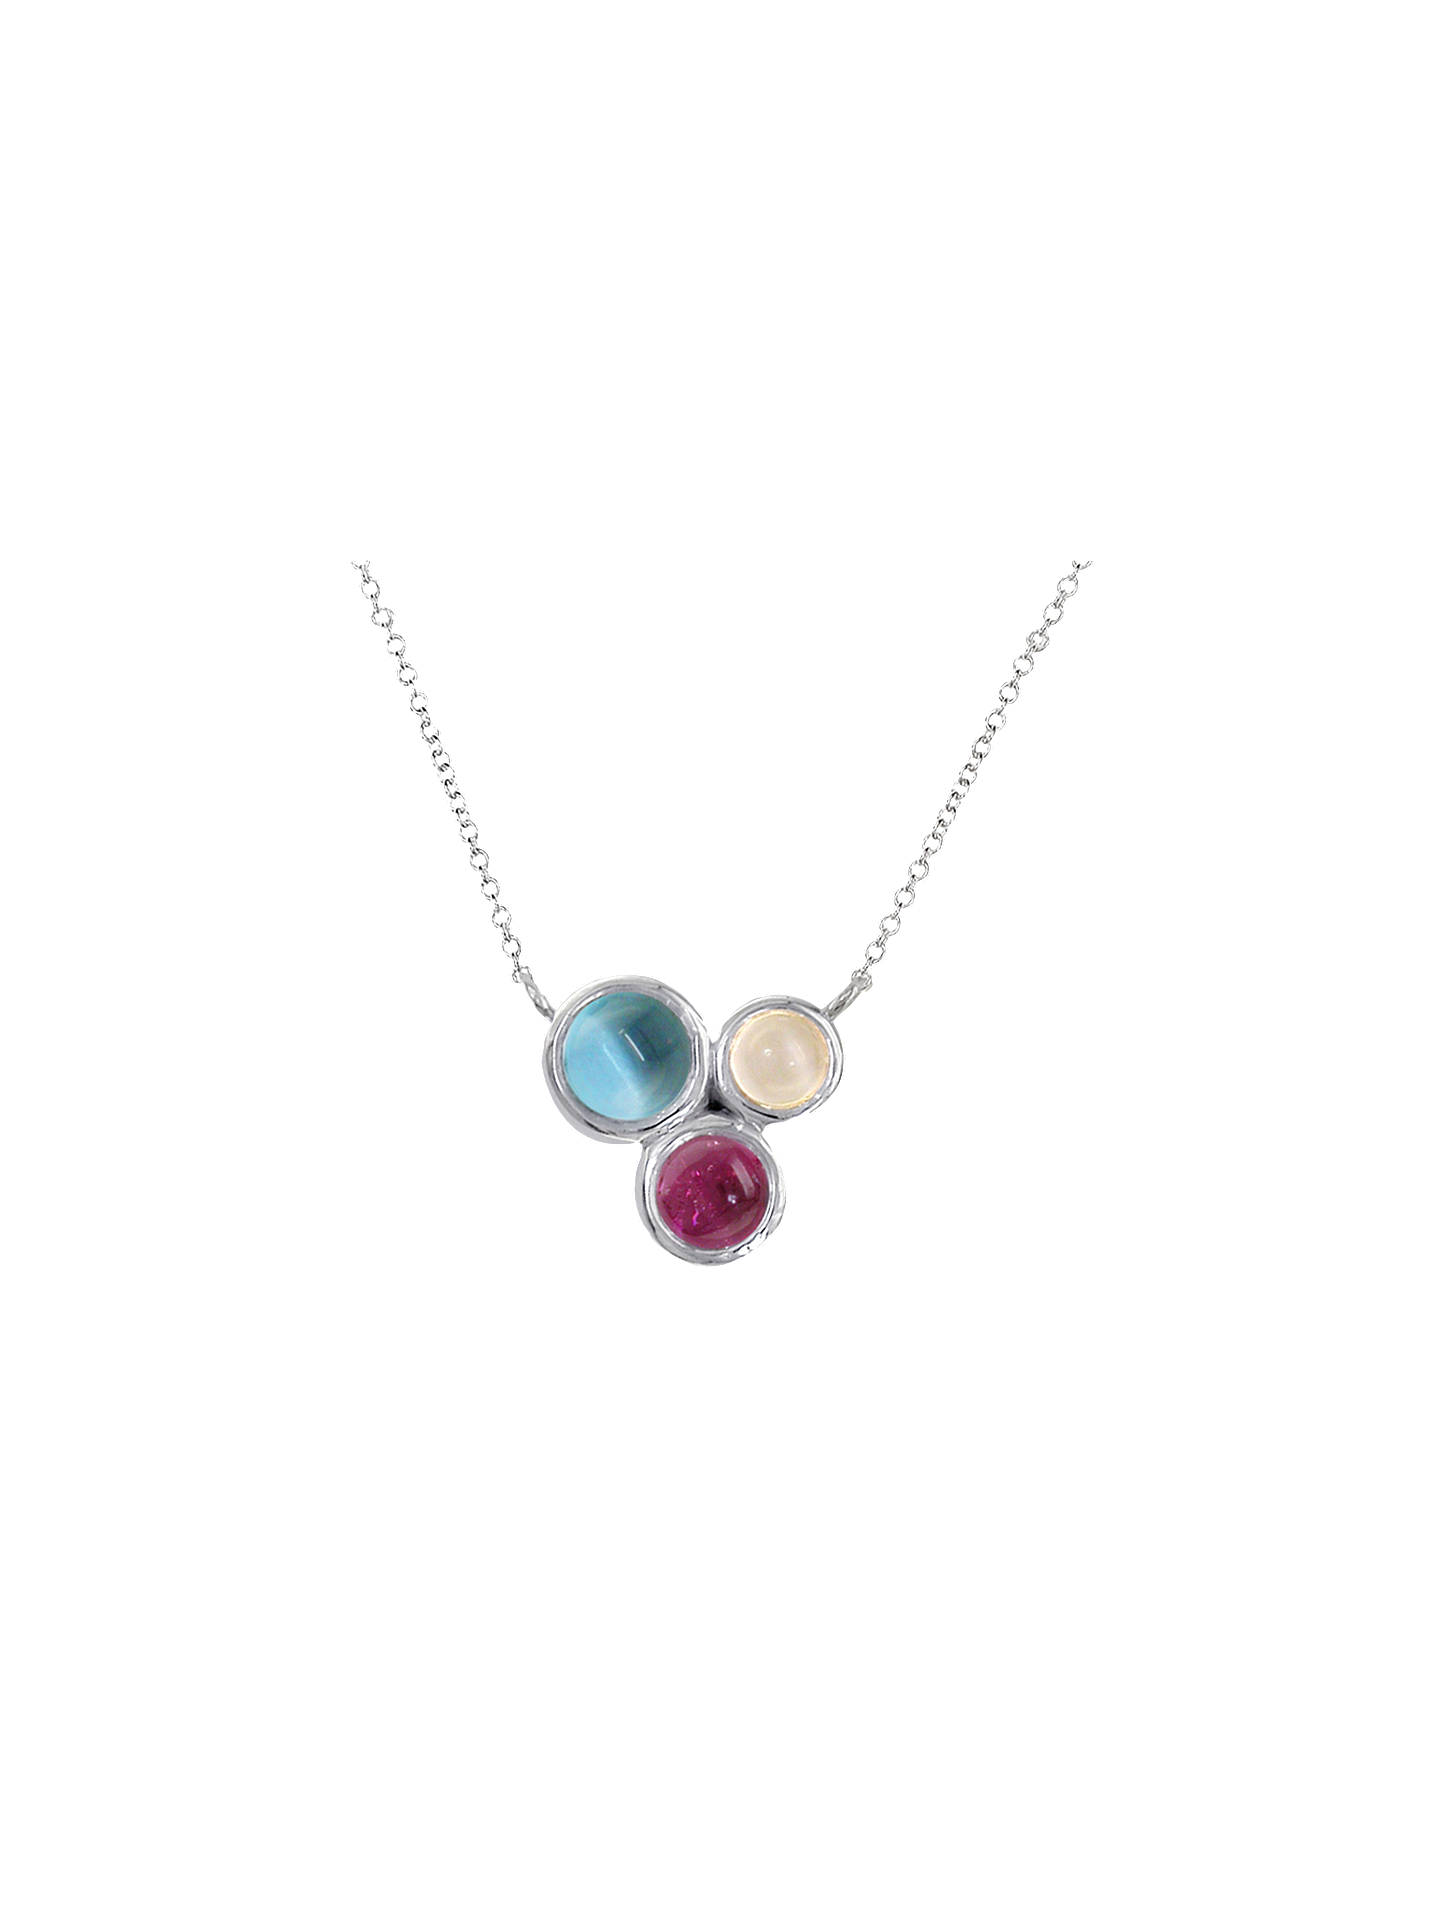 BuyLondon Road 9ct Gold 3 Stone Round Pendant Necklace, White Gold/Multi Online at johnlewis.com